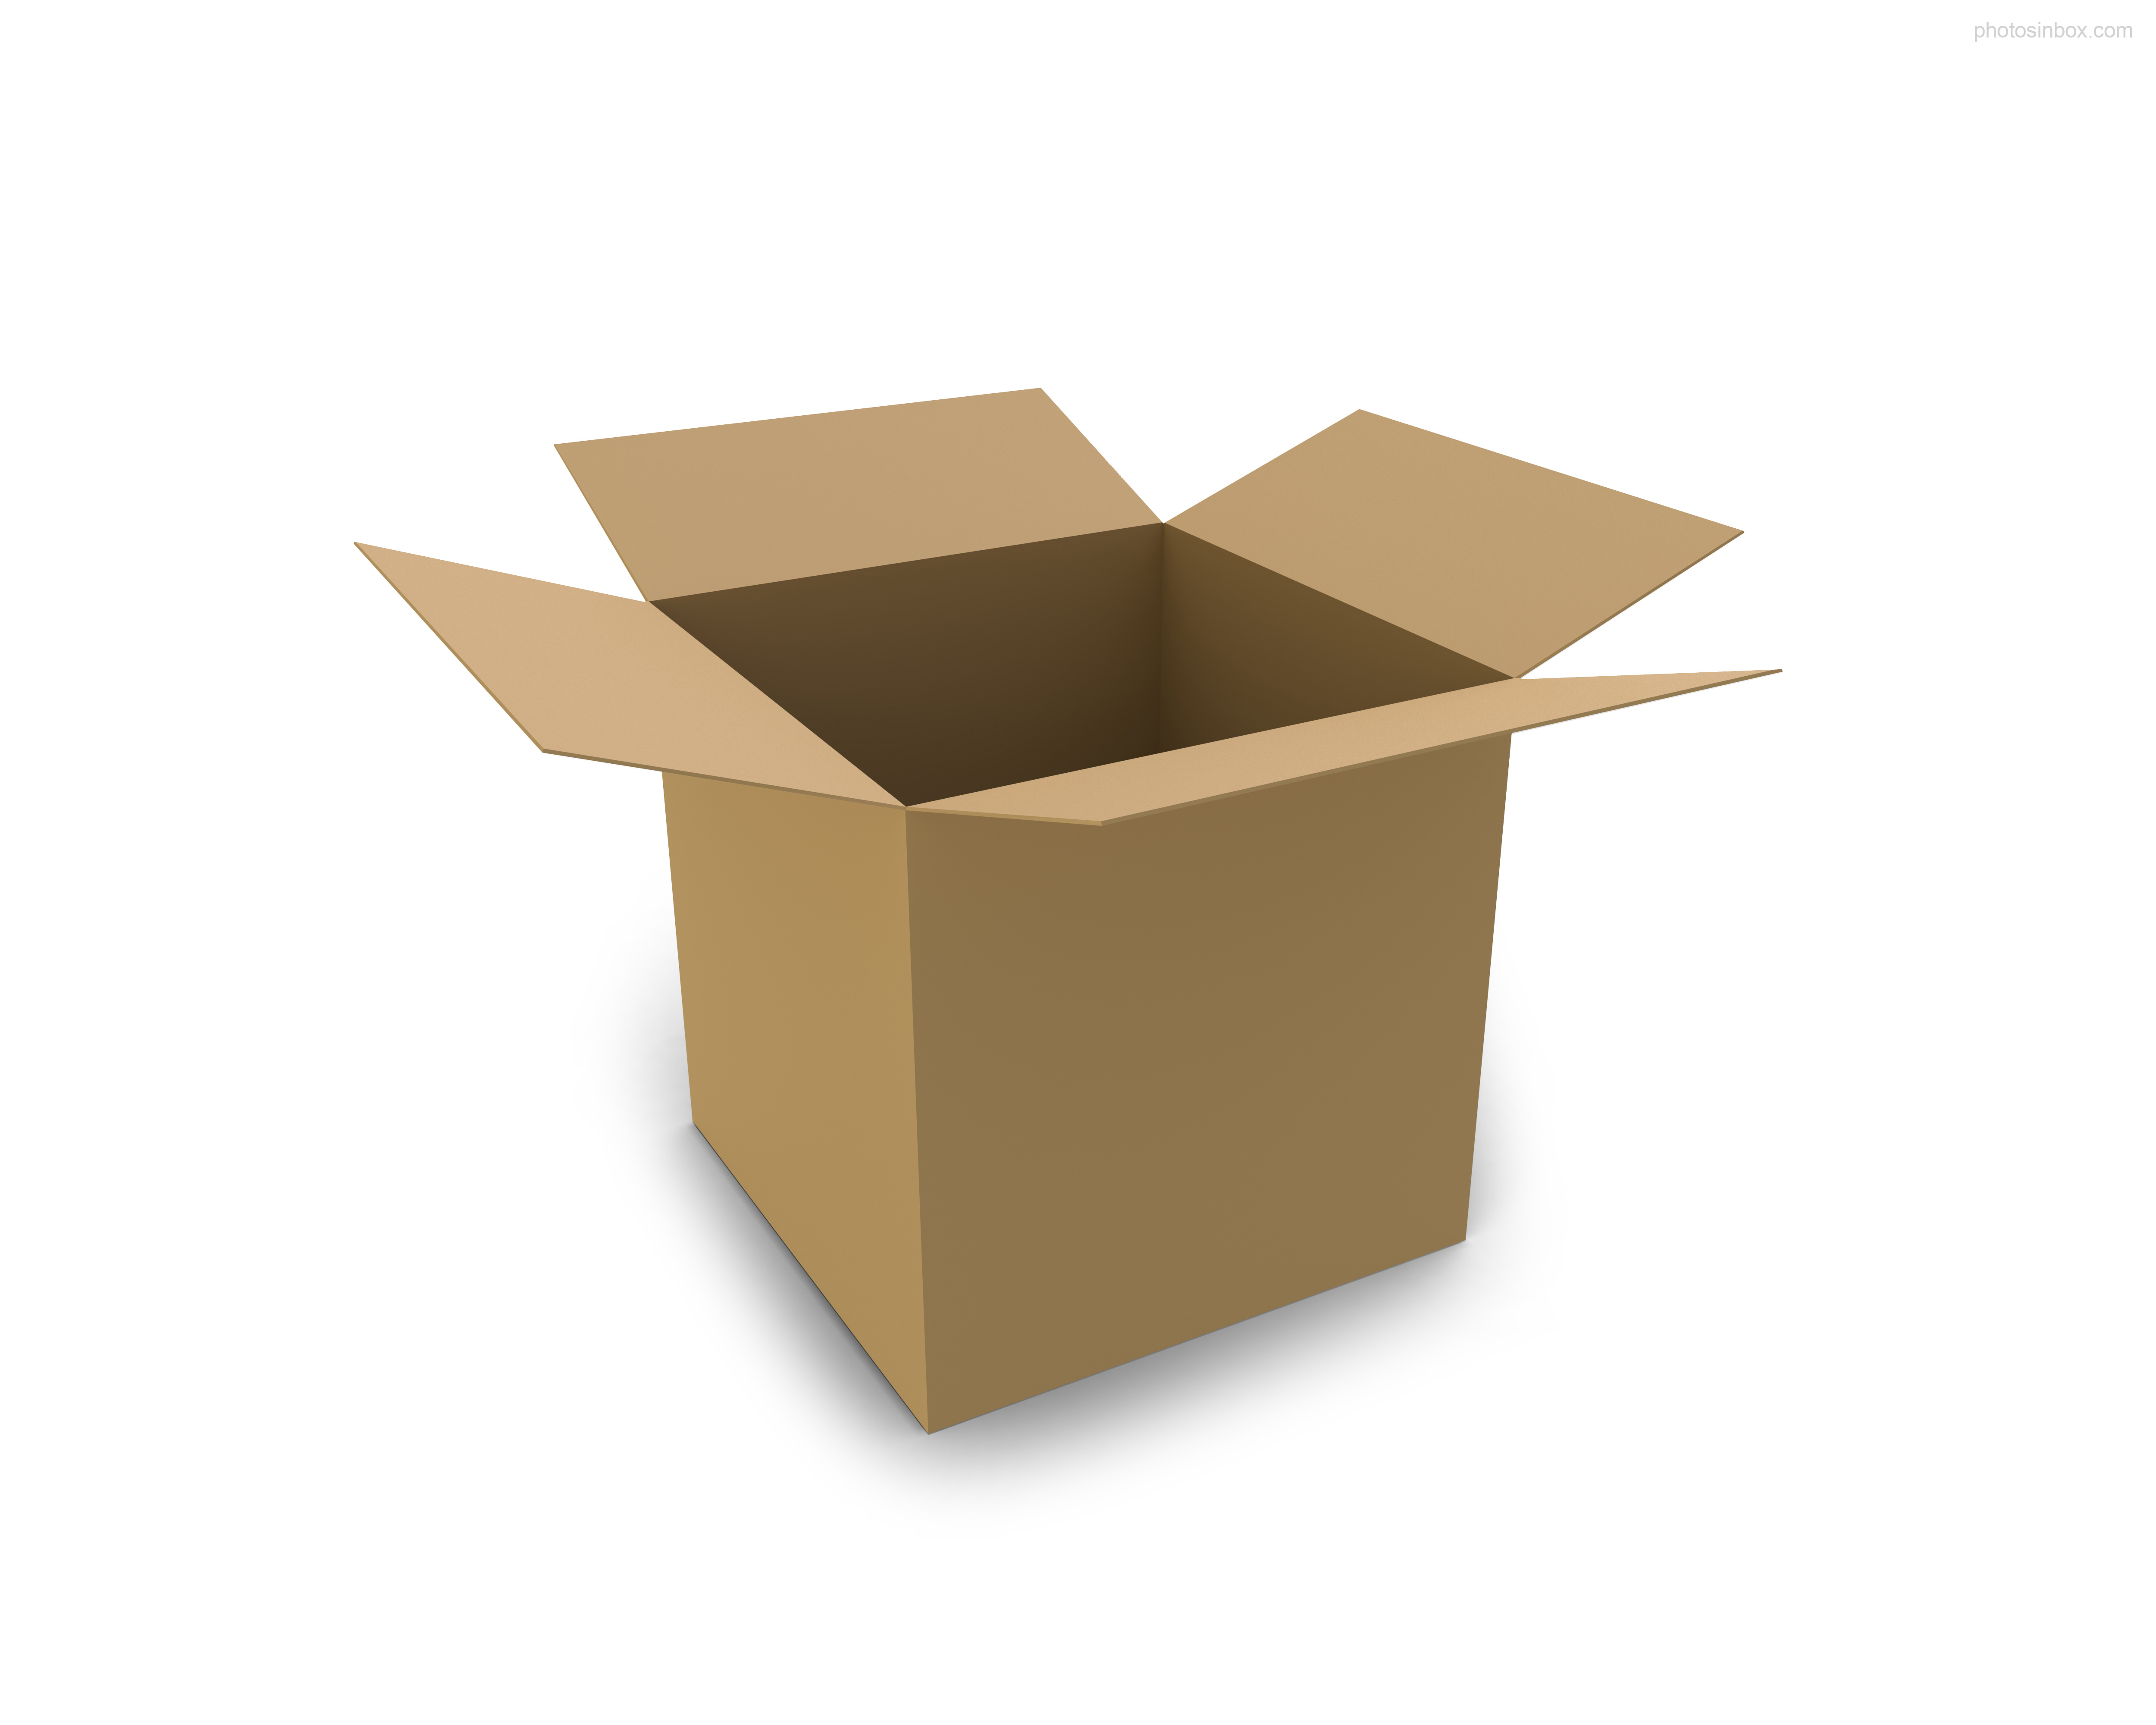 picture of a box